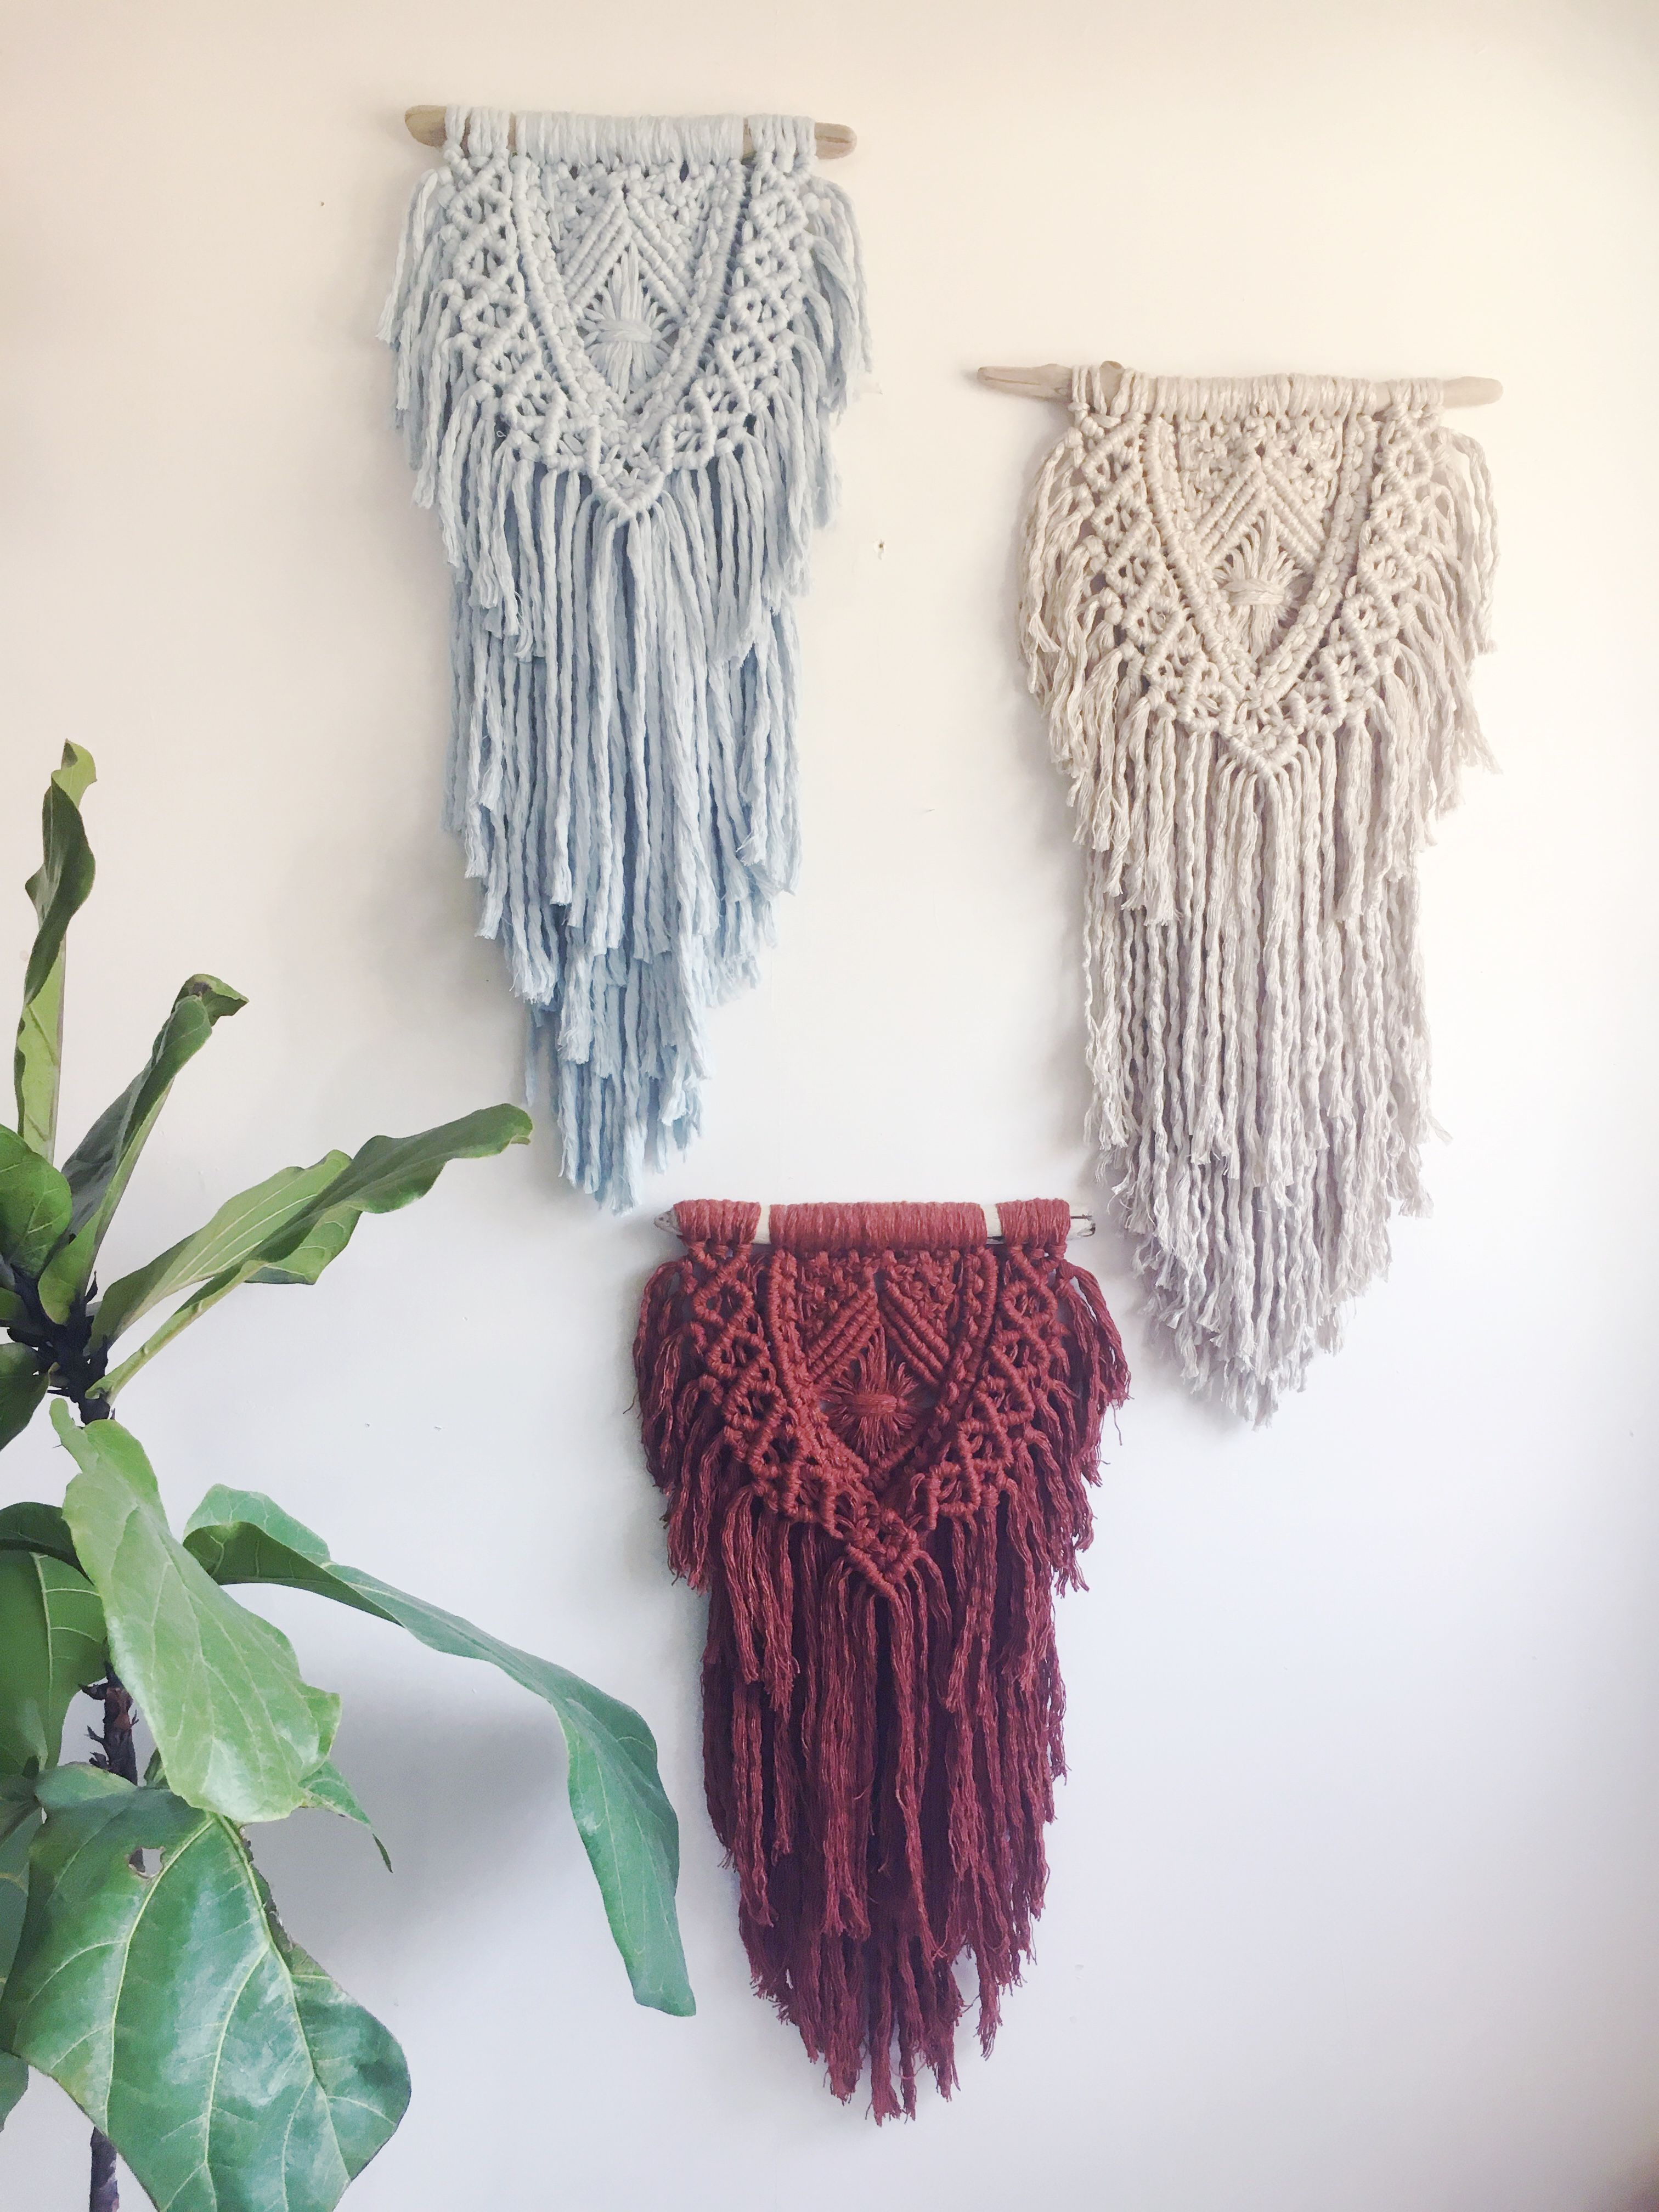 Small macrame Small macrame How To